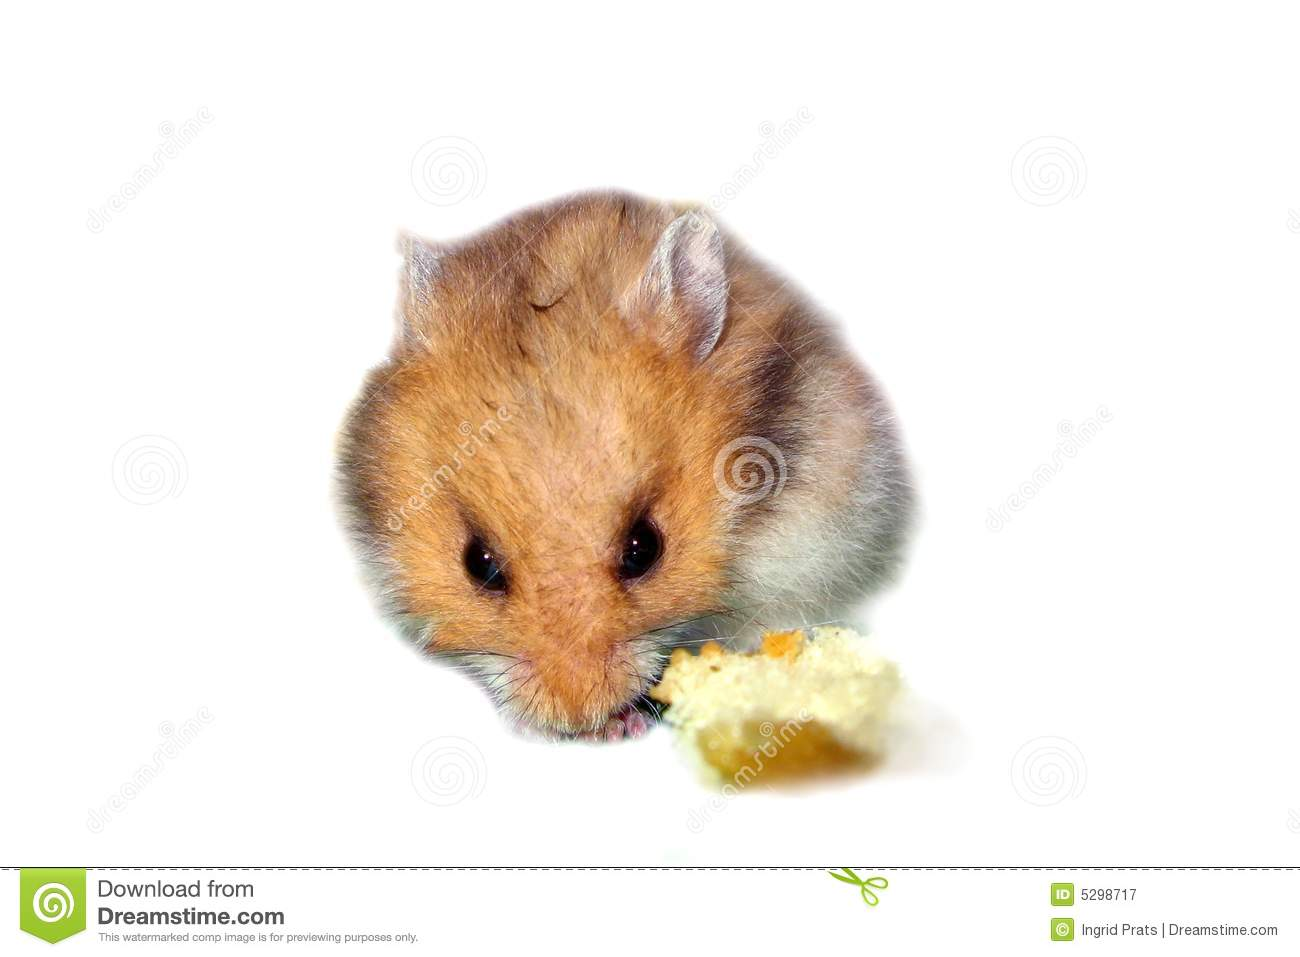 Diet for Jungar hamsters